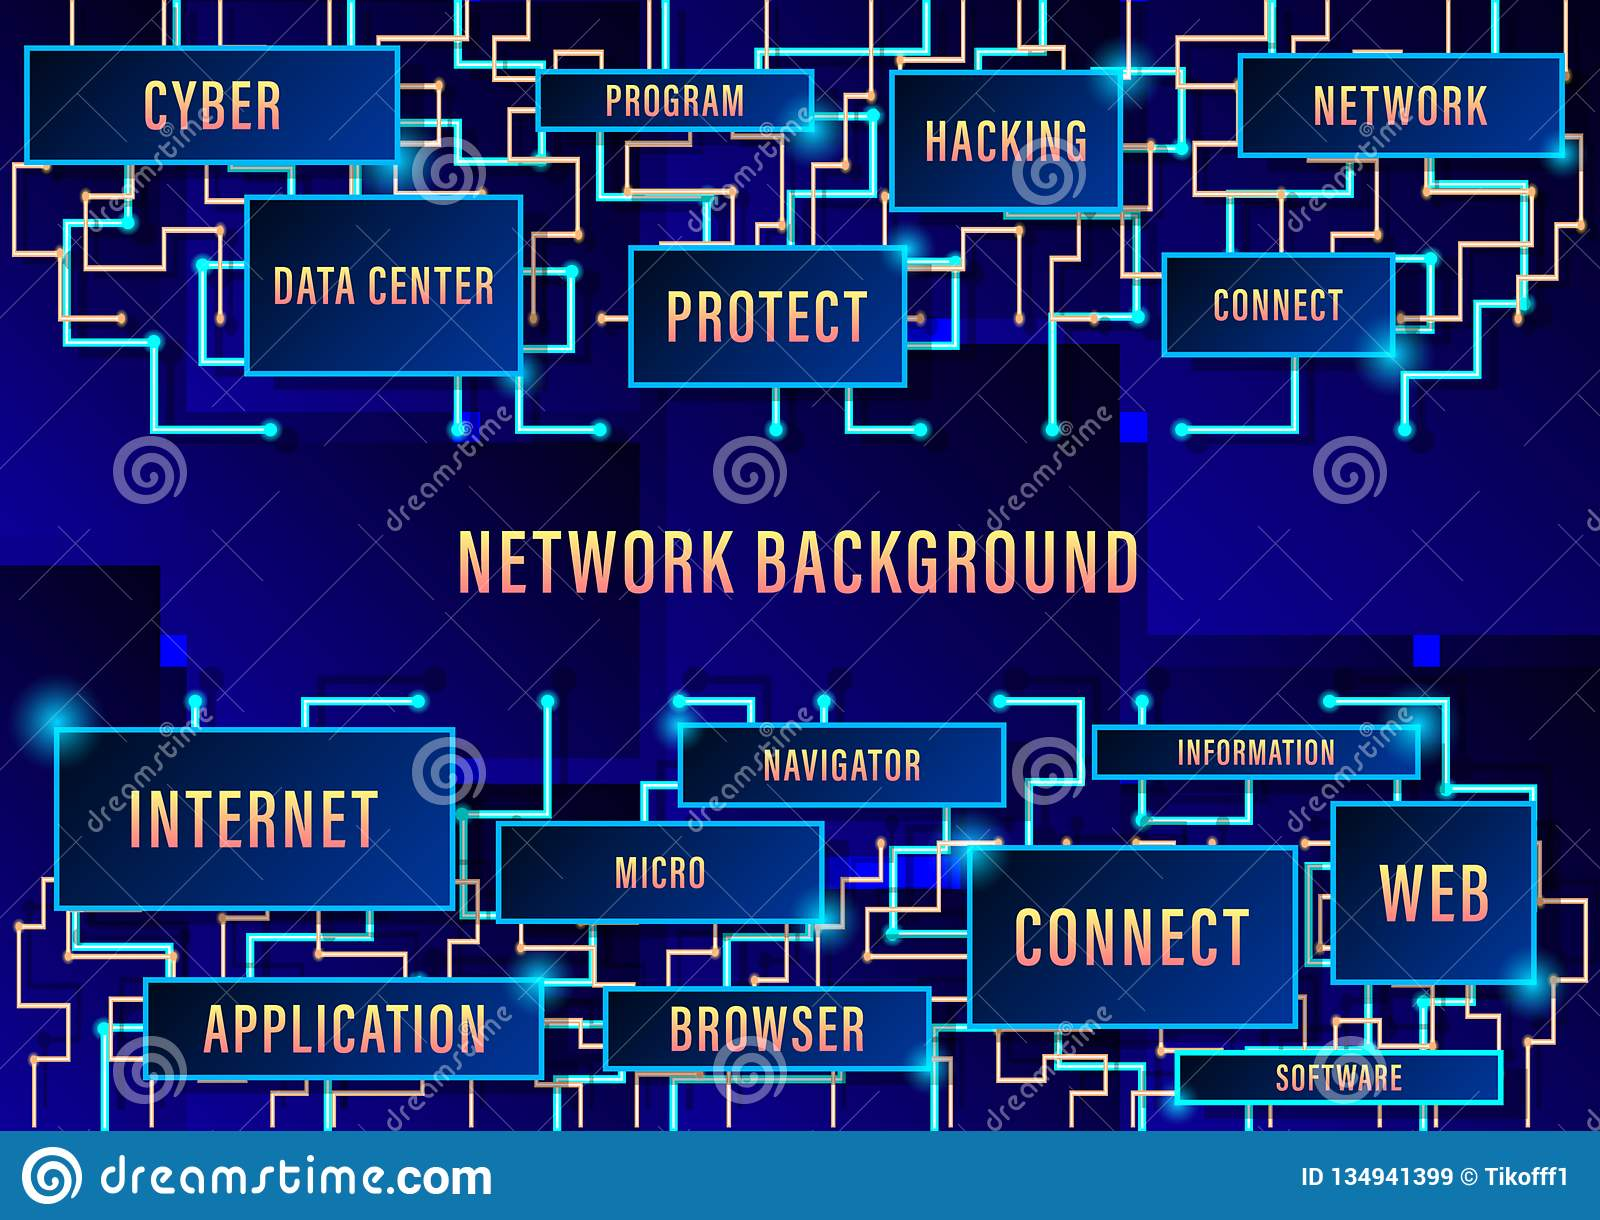 Network background, binary circuit board future technology, blue cyber security concept background, high speed digital internet.